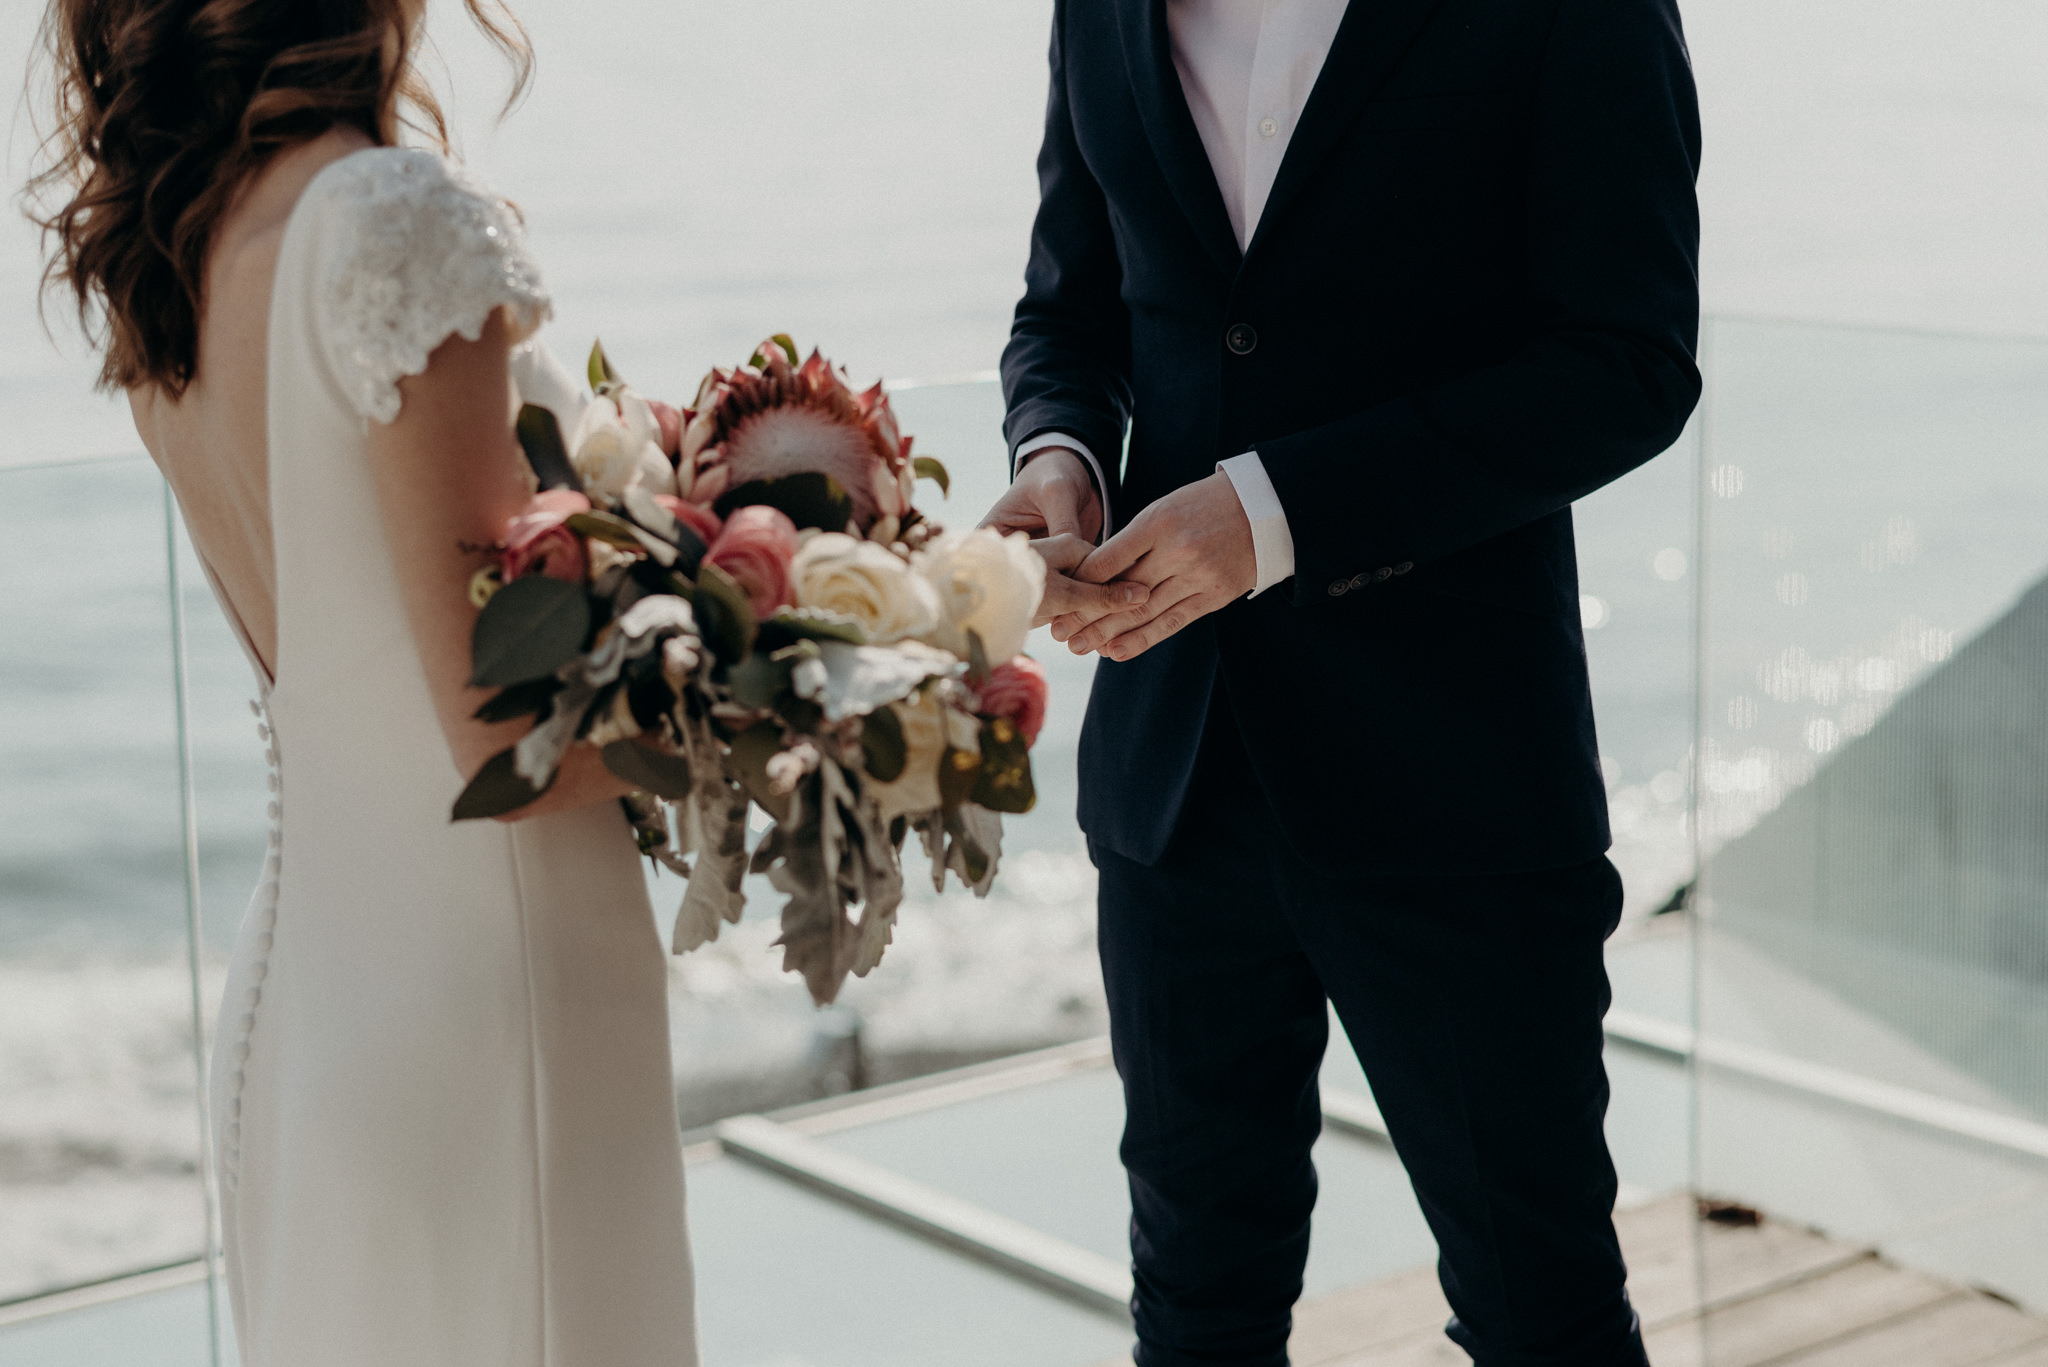 groom holding brides hand during outdoor winter wedding ceremony